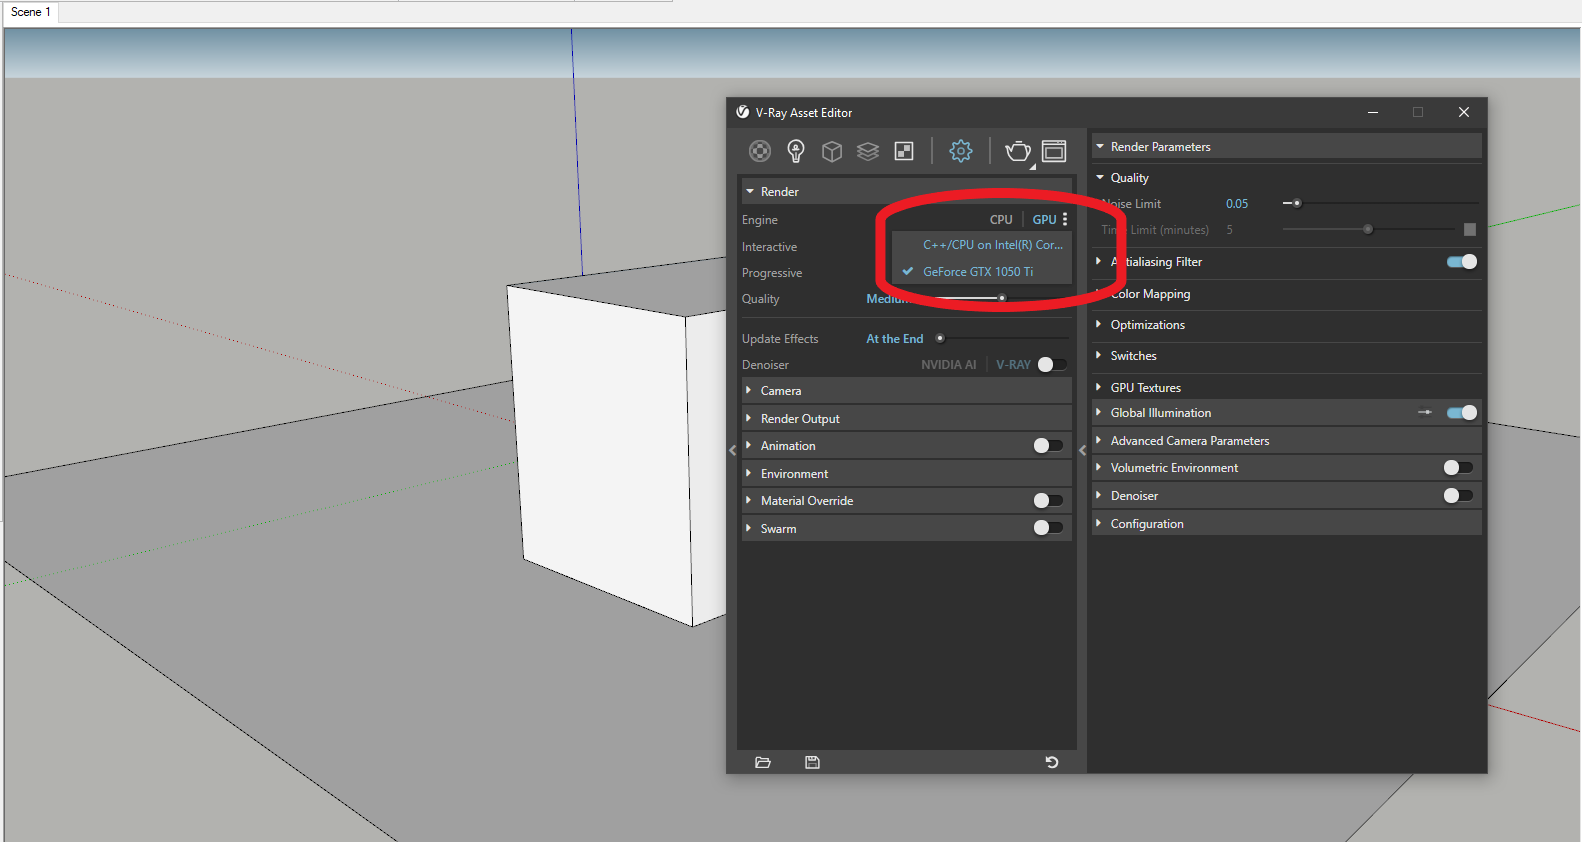 Please Help My Primary 2080ti Card Not Showing Up In List Of Available Gpus For Render In Vray For Sketchup Chaos Forums